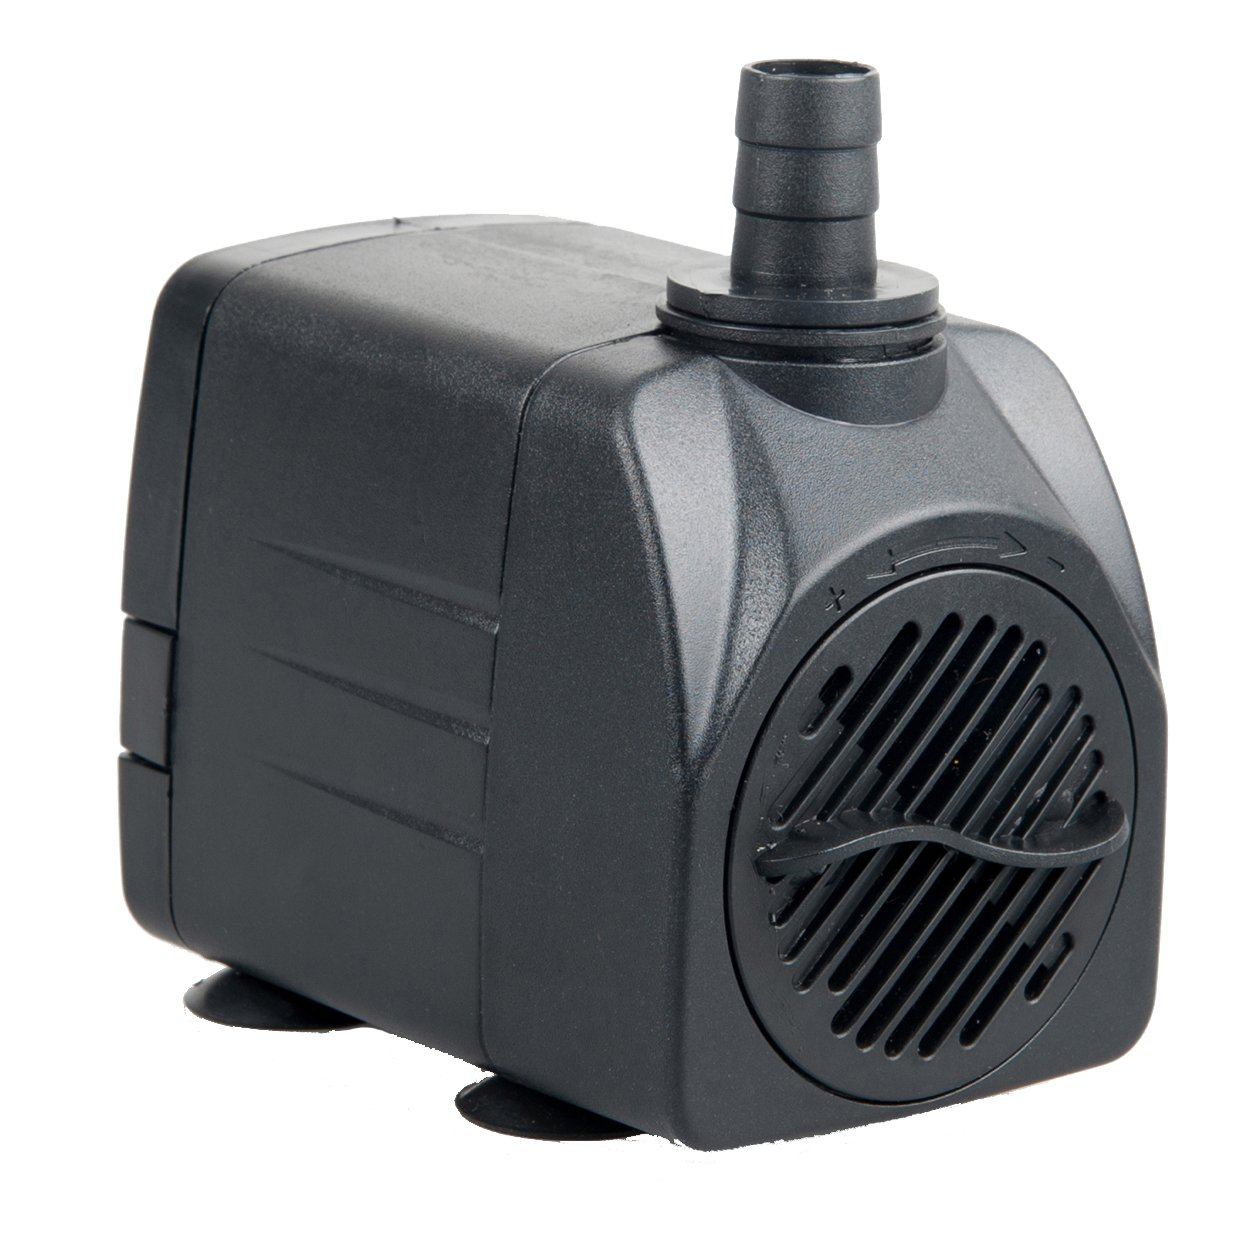 Uniclife 80 - 400 GPH Submersible Water Pump Indoor Outdoor Fountain Pool Aquarium Quiet Pump with 6' UL Listed Power Cord